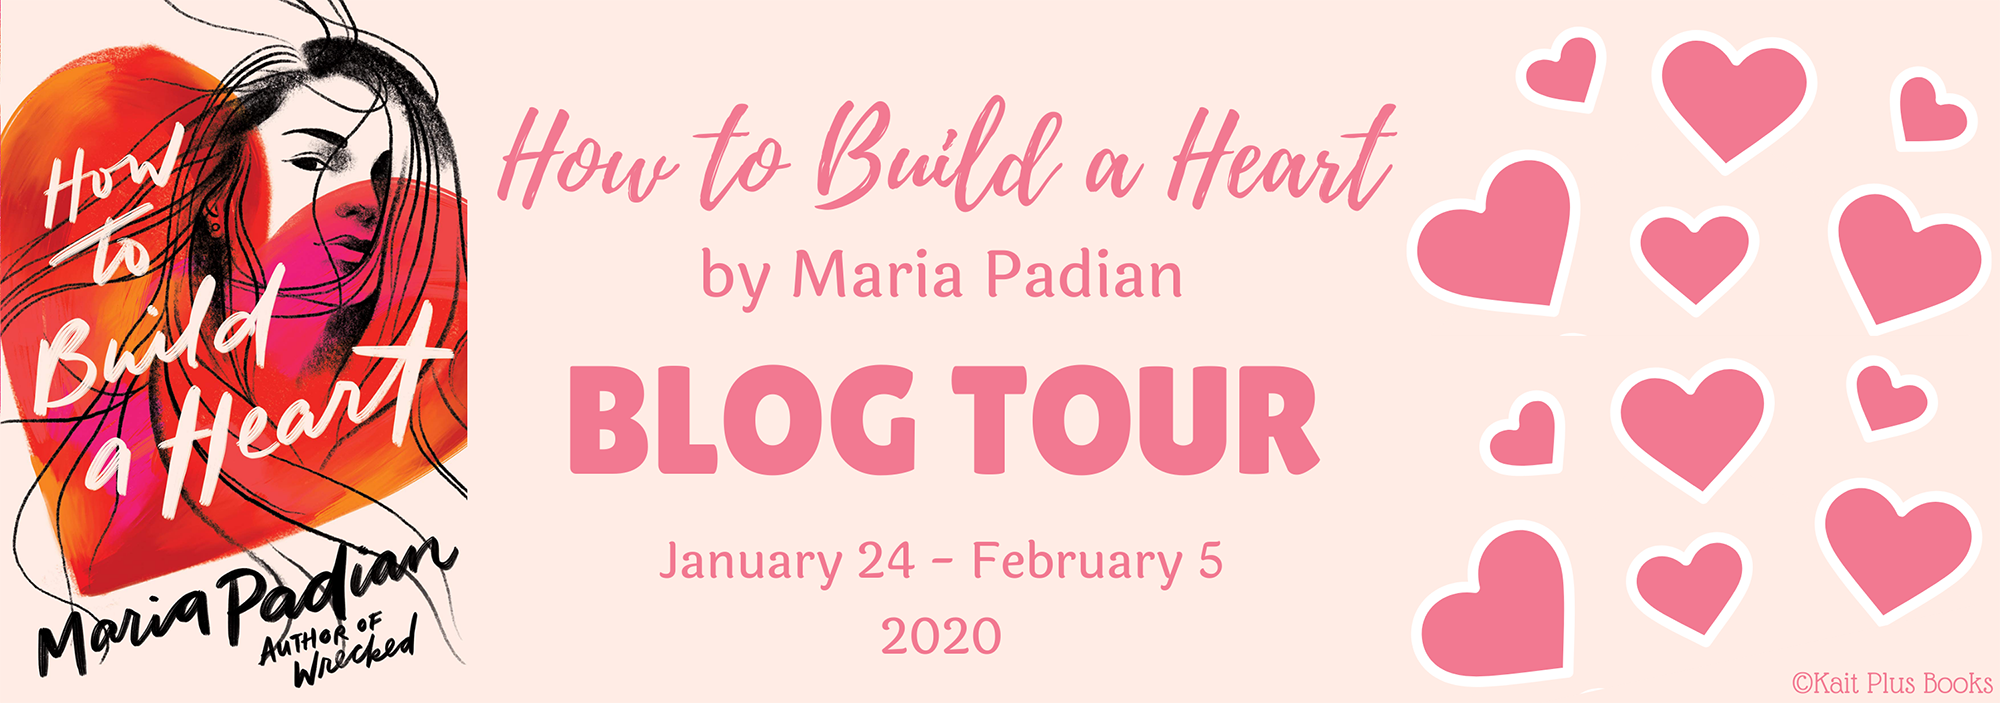 Blog Tour: How to Build a Heart by Maria Padian (Review + Giveaway!!!)